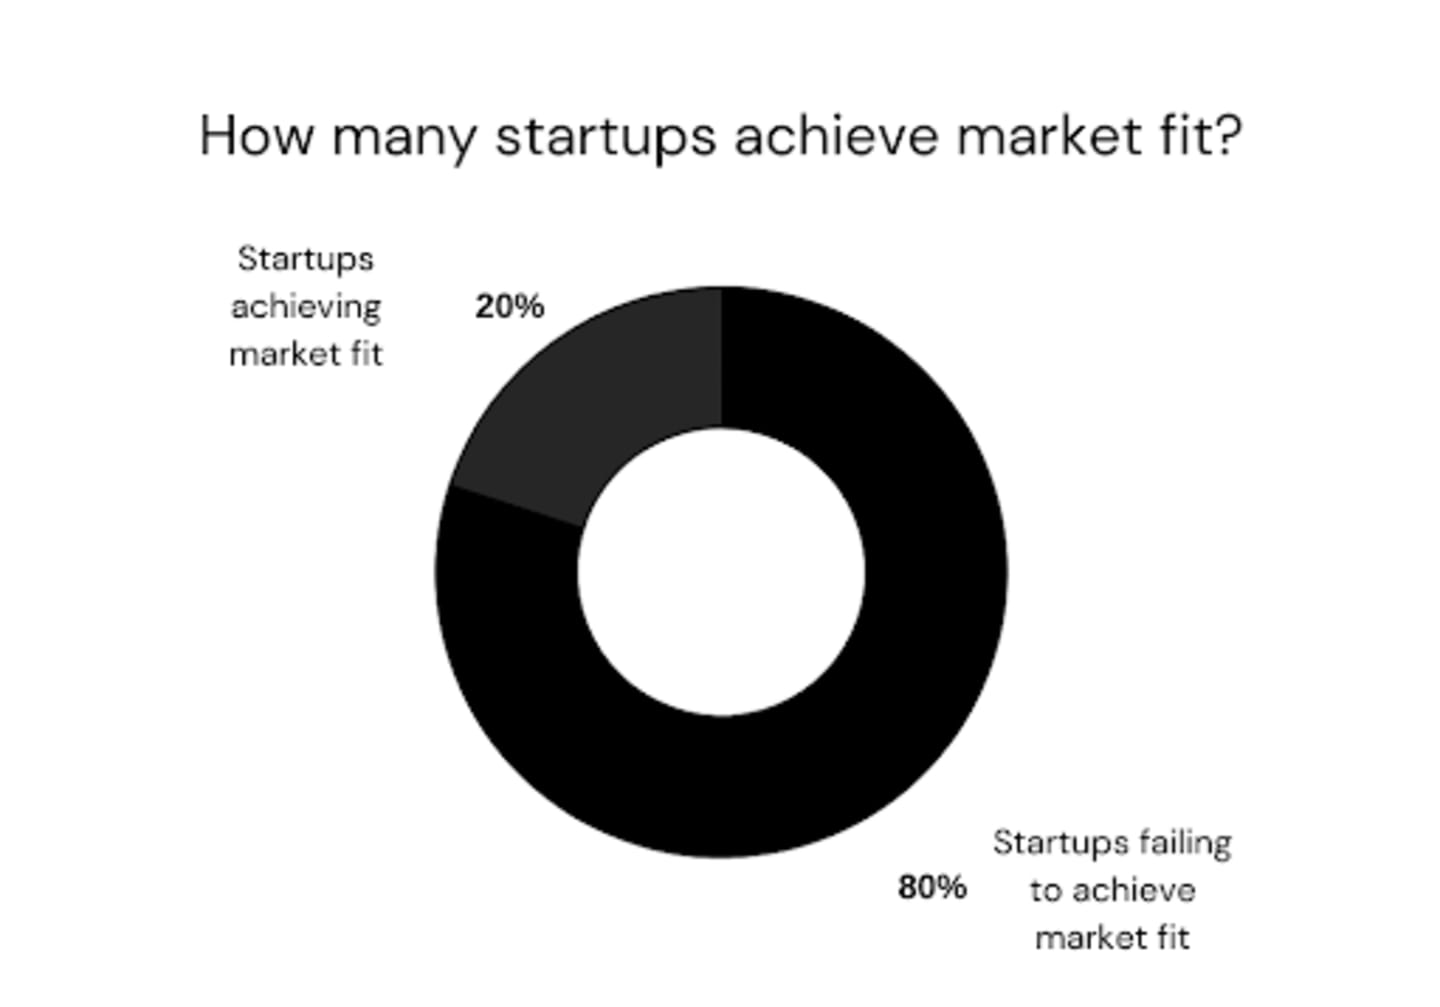 A chart displays data showing that 80% if startups fail to achieve market fit.